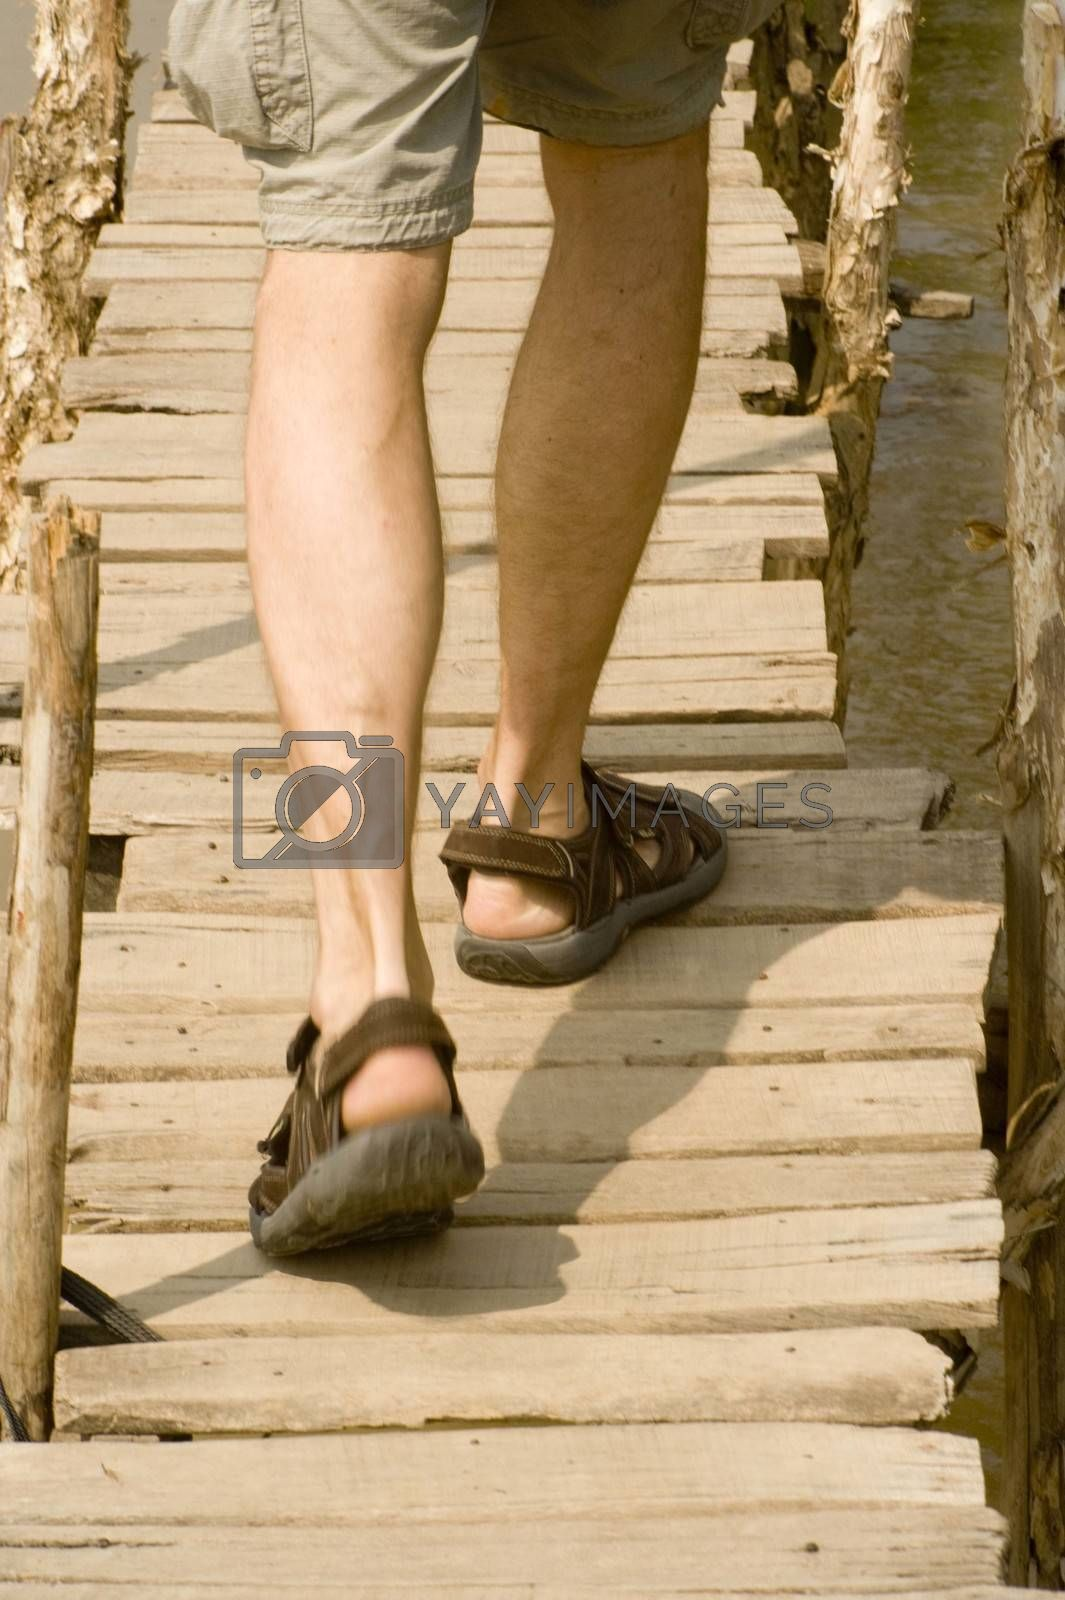 a person wearing sandals on a sunny summer day, outdoors